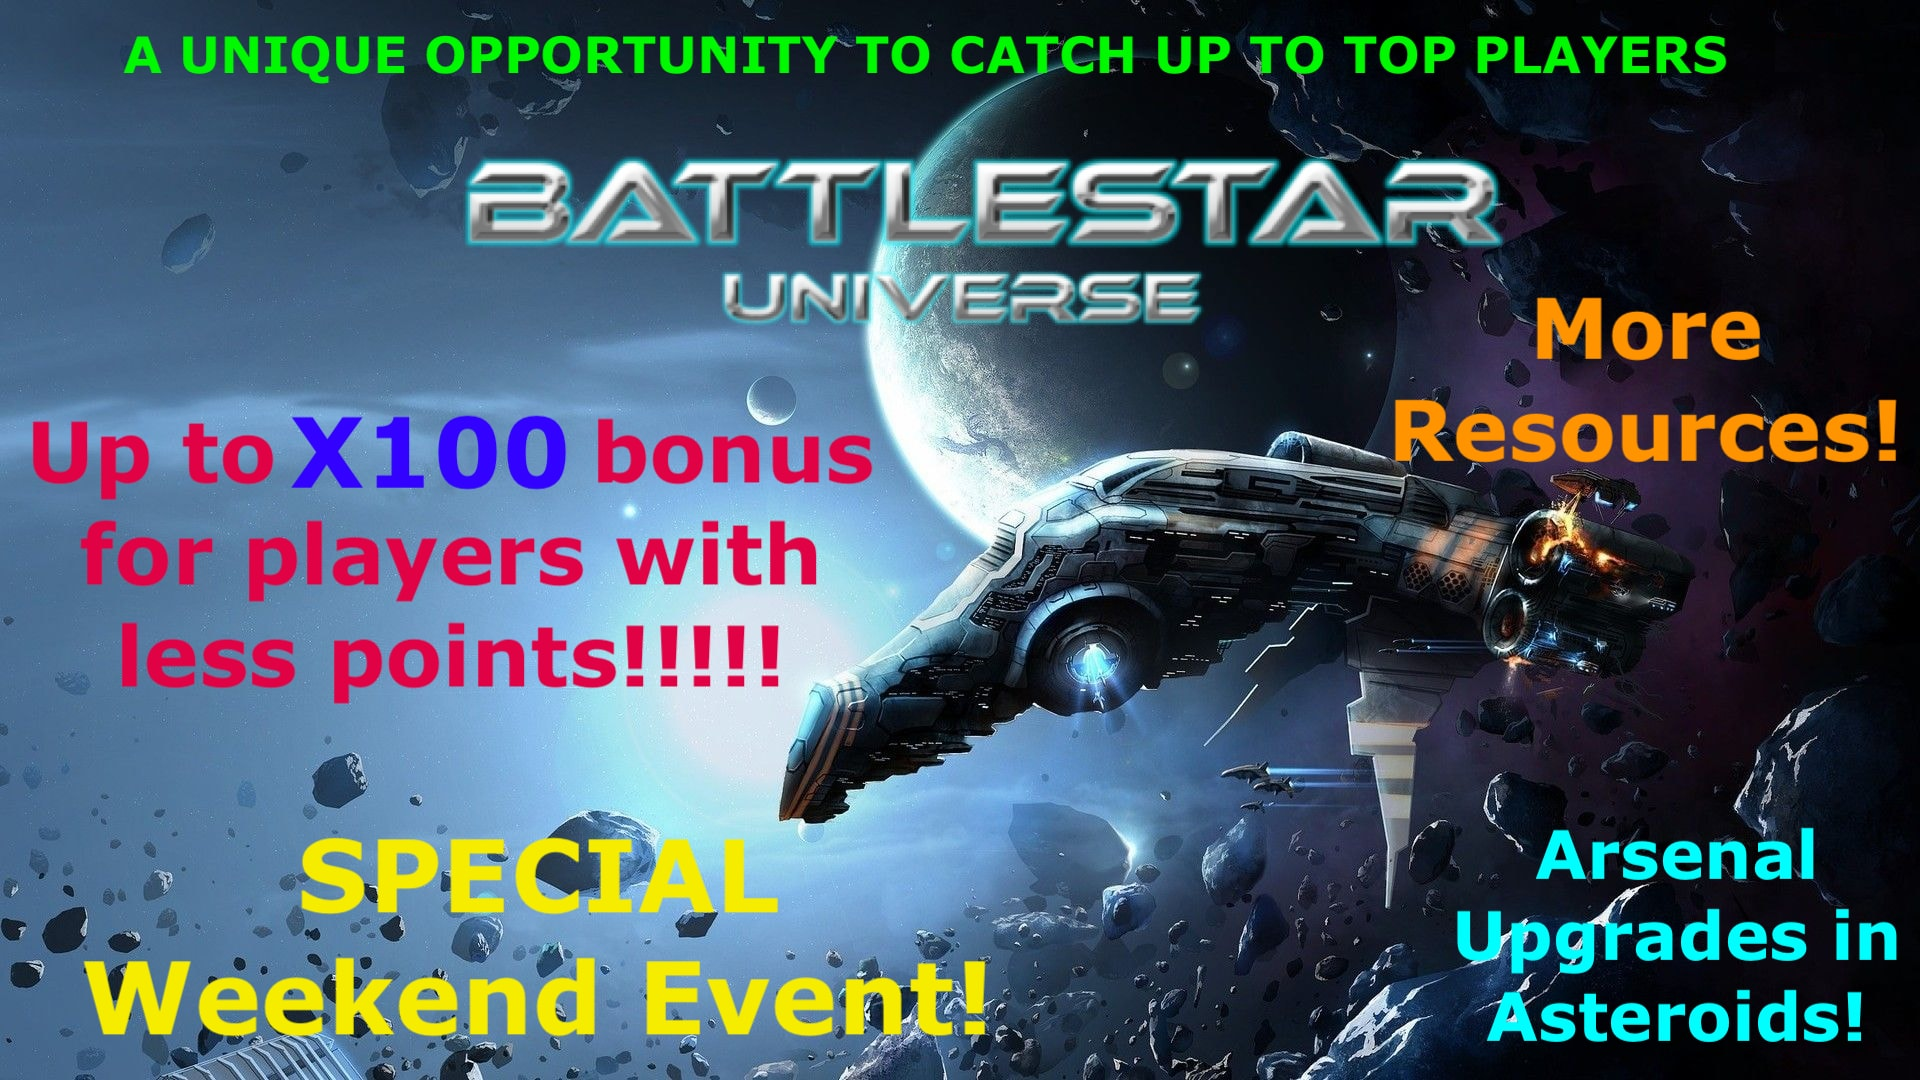 ASTEROID INVASION!! SPECIAL WEEKEND EVENT!!